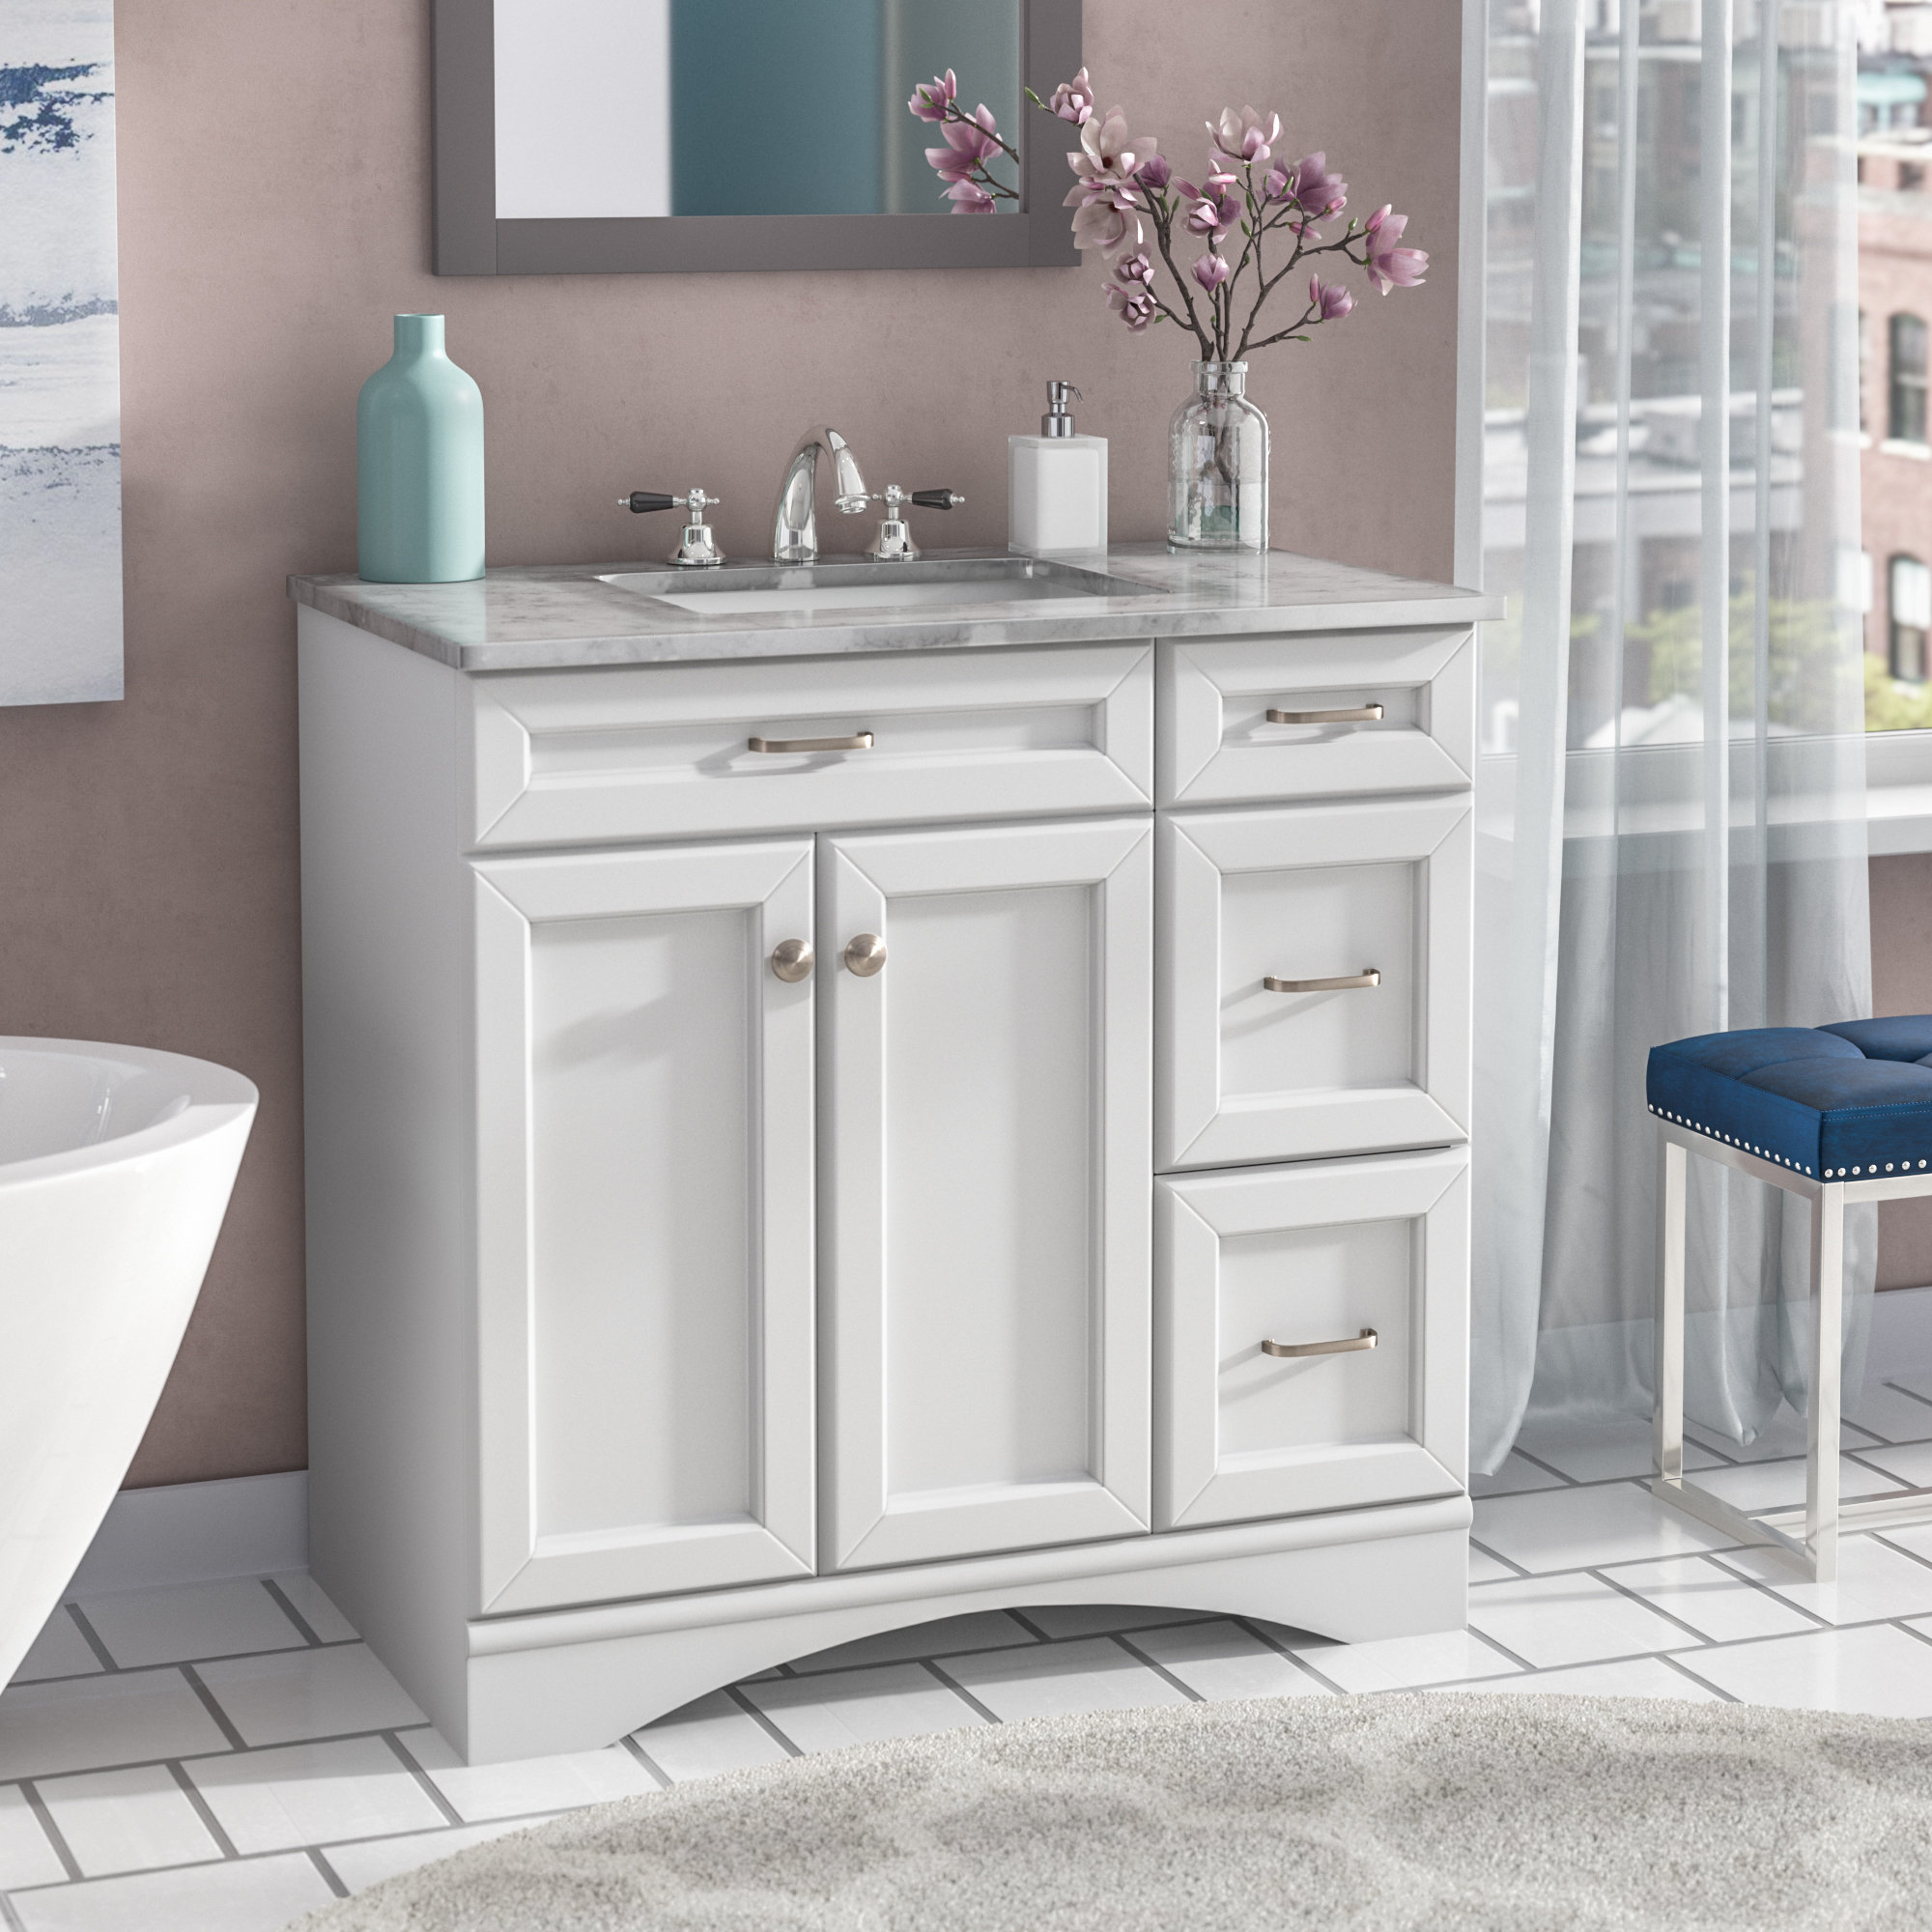 Beautiful Page 3 Of Makeup Vanity Walmart Tags : Floating Bathroom Vanity 36 in Walmart Bathroom Vanities